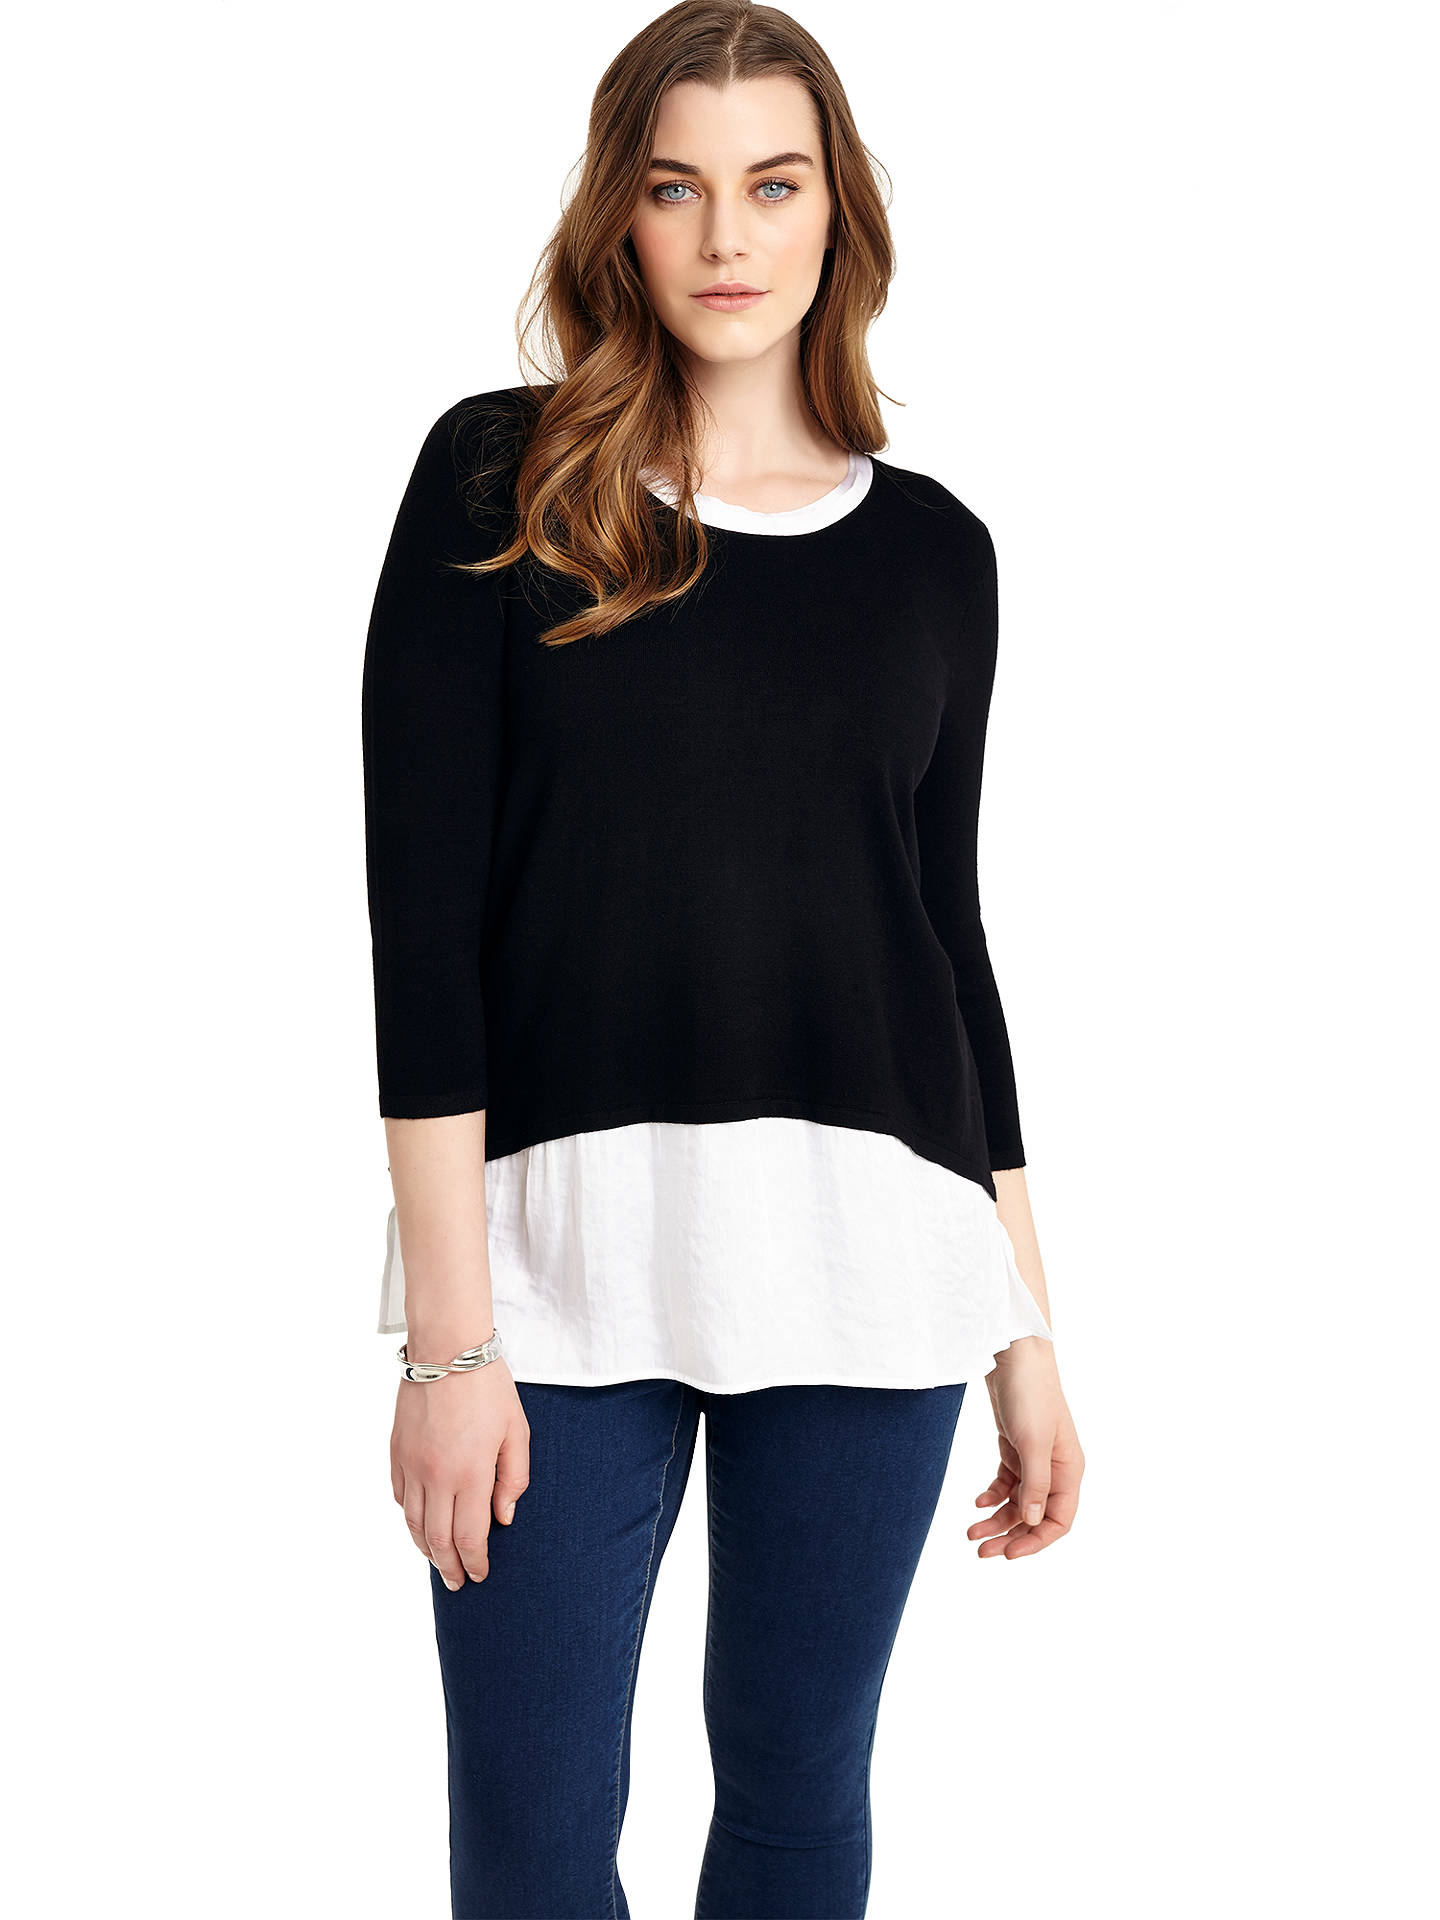 BuyStudio 8 Kassandra Top, Black/White, 12 Online at johnlewis.com